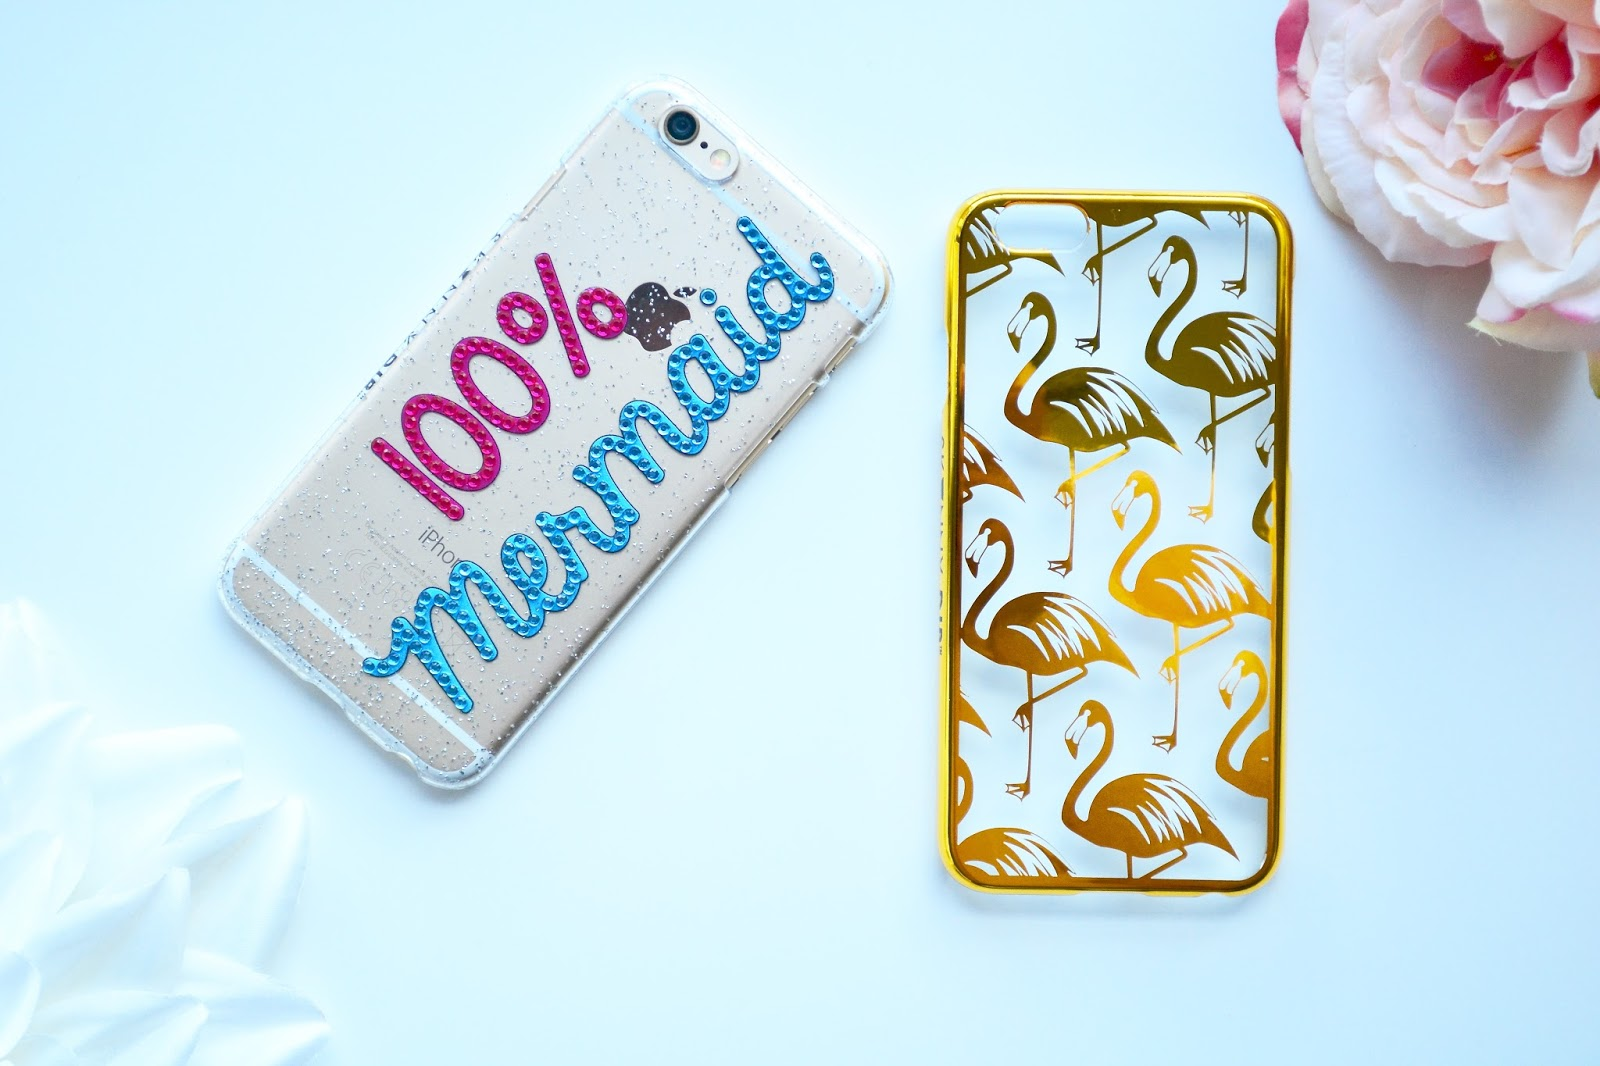 Skinny Dip London iPhone6 Case, 100% Mermaid, Mermaid Case, Phone Case, Flamingo Phone Case